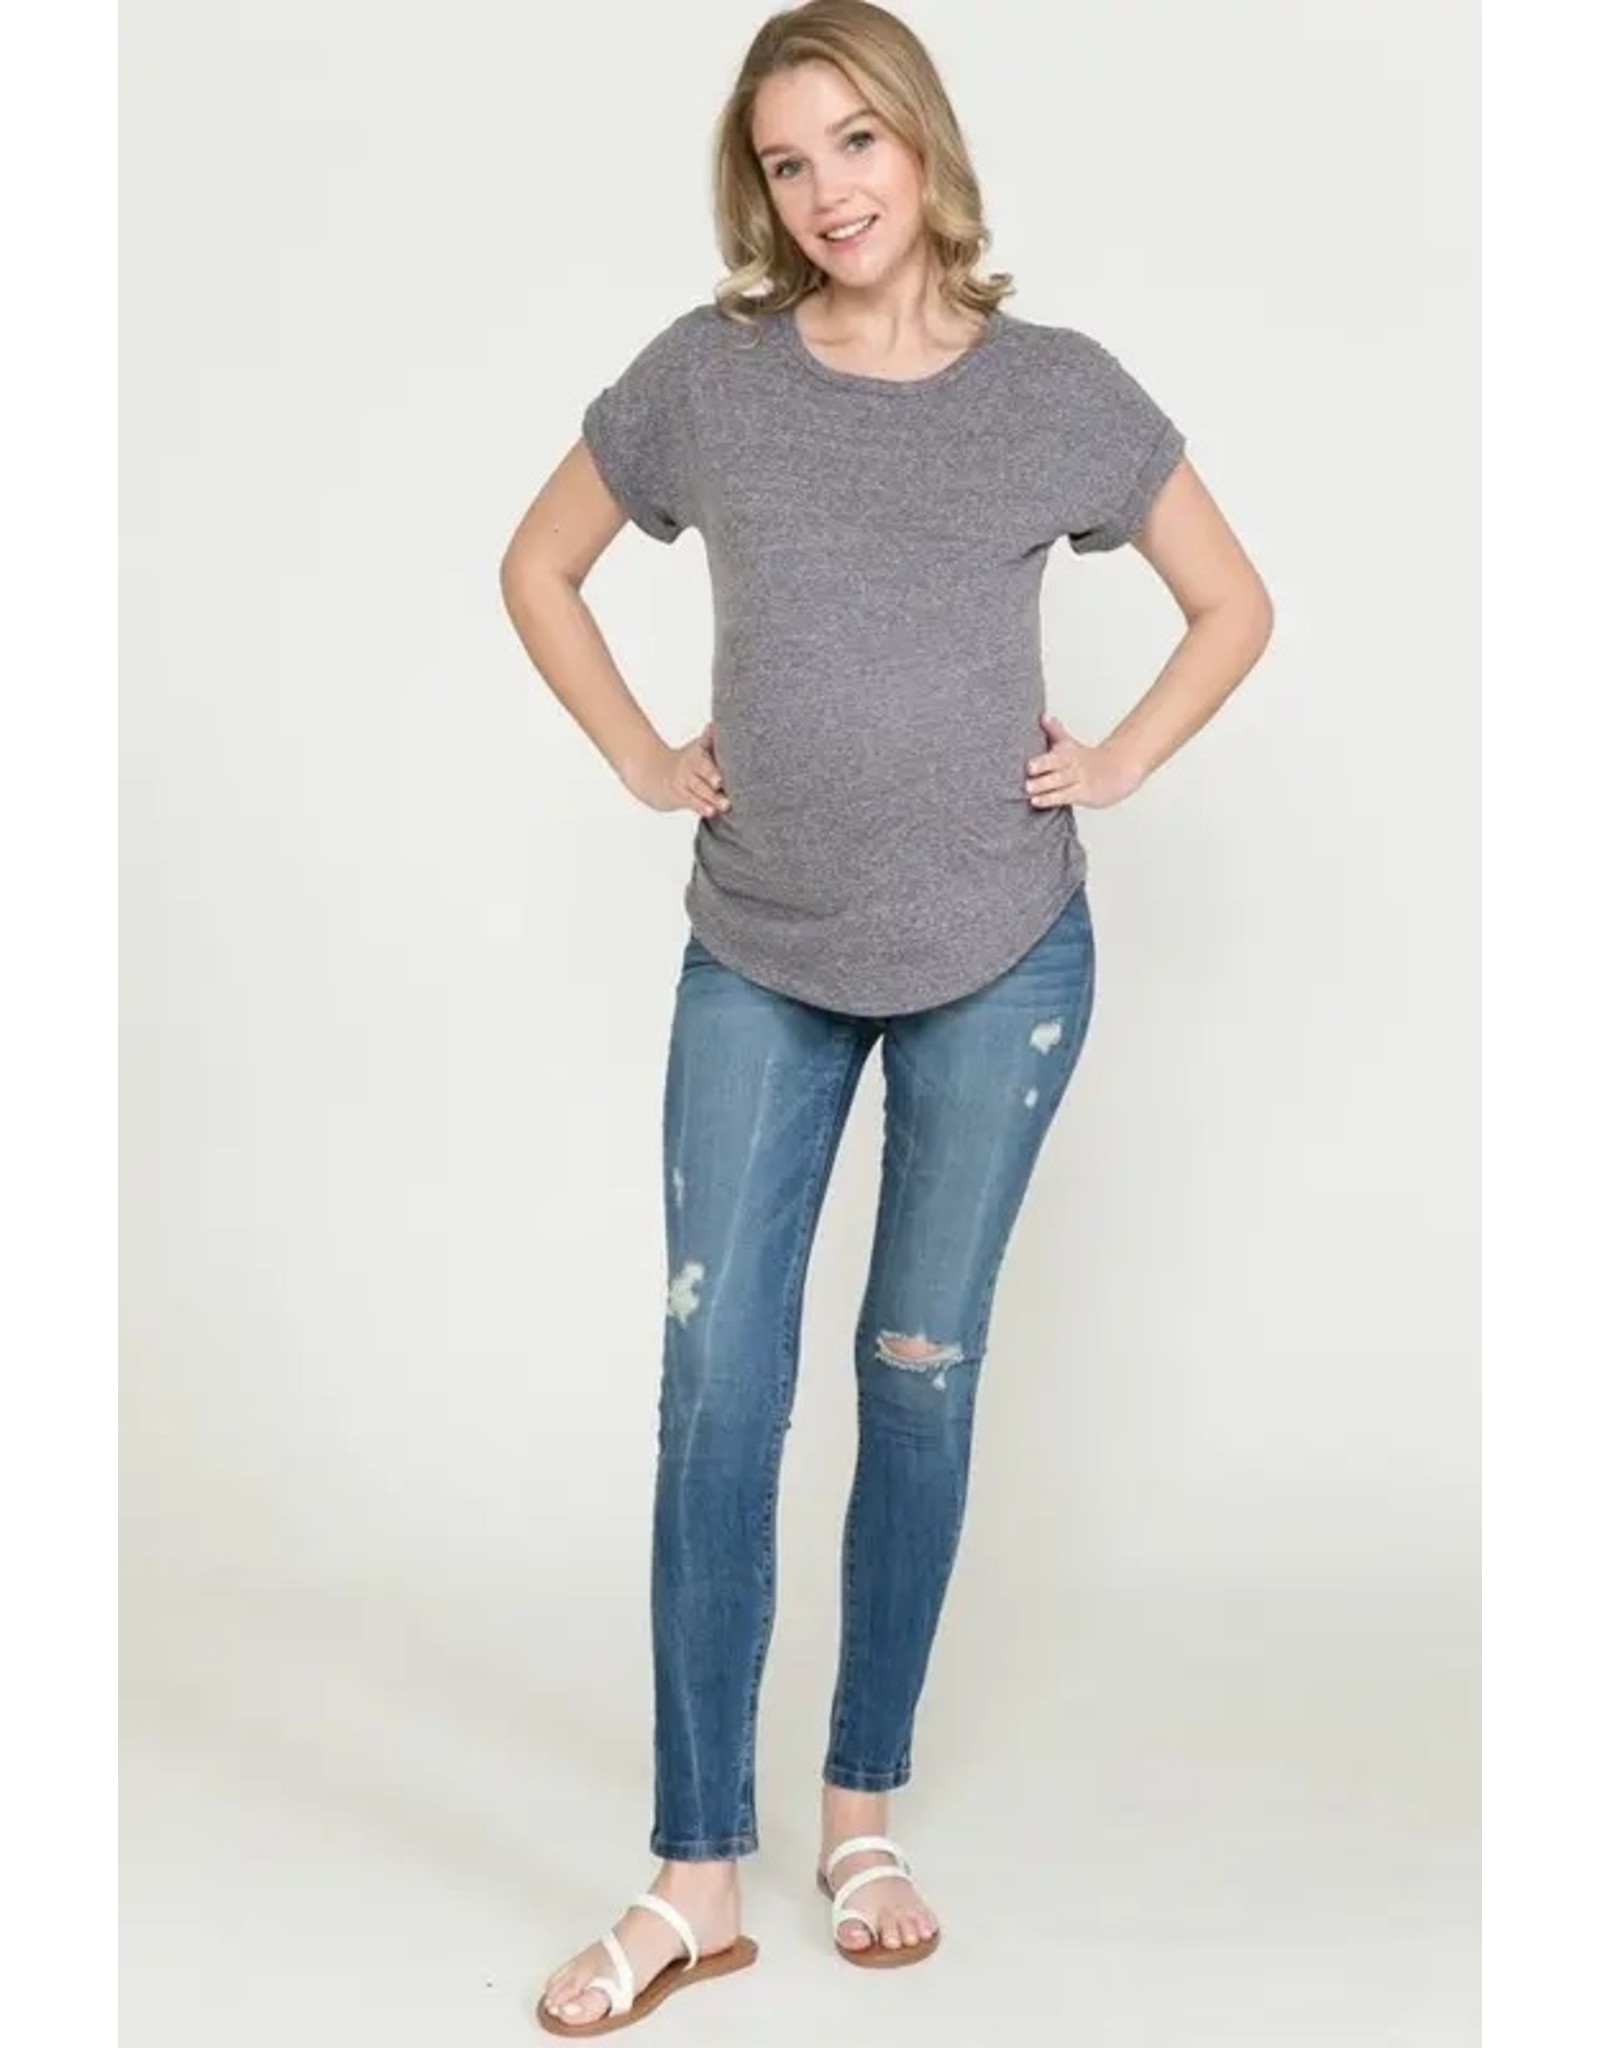 Ashley Nicole, Dolman Sleeve Side Ruched Basic Maternity Top, Charcoal